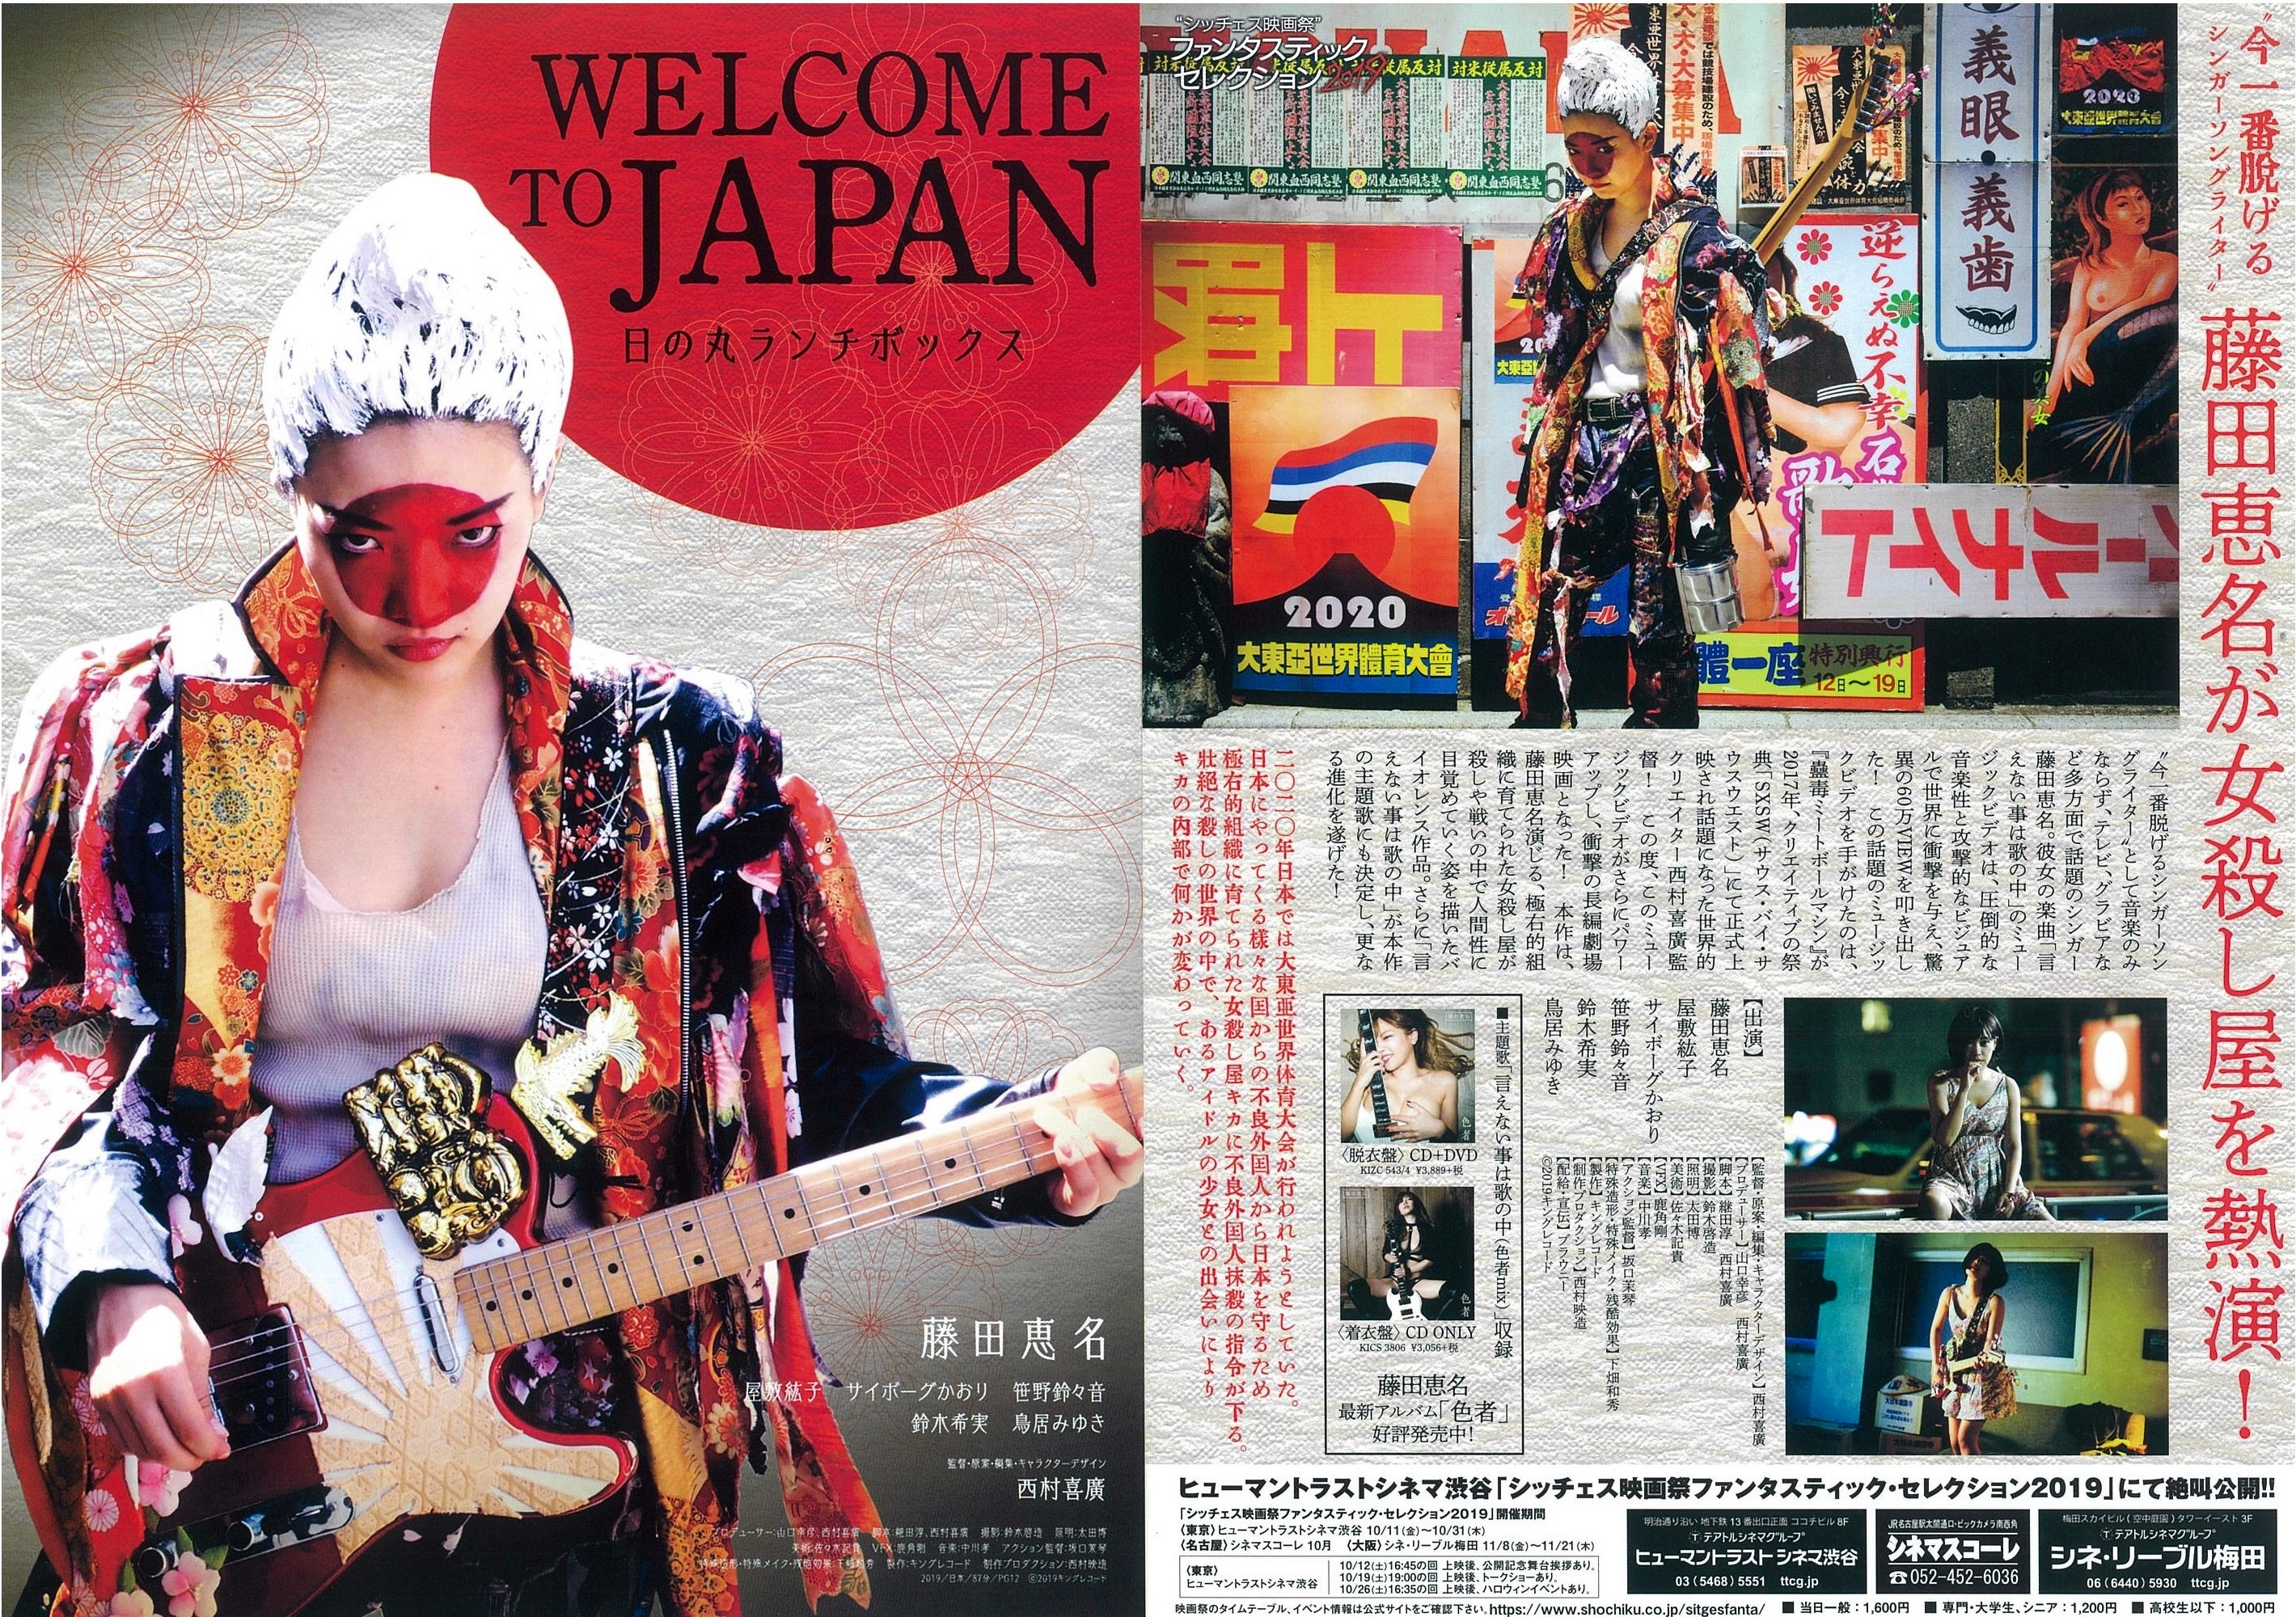 『WELCOME TO JAPAN』